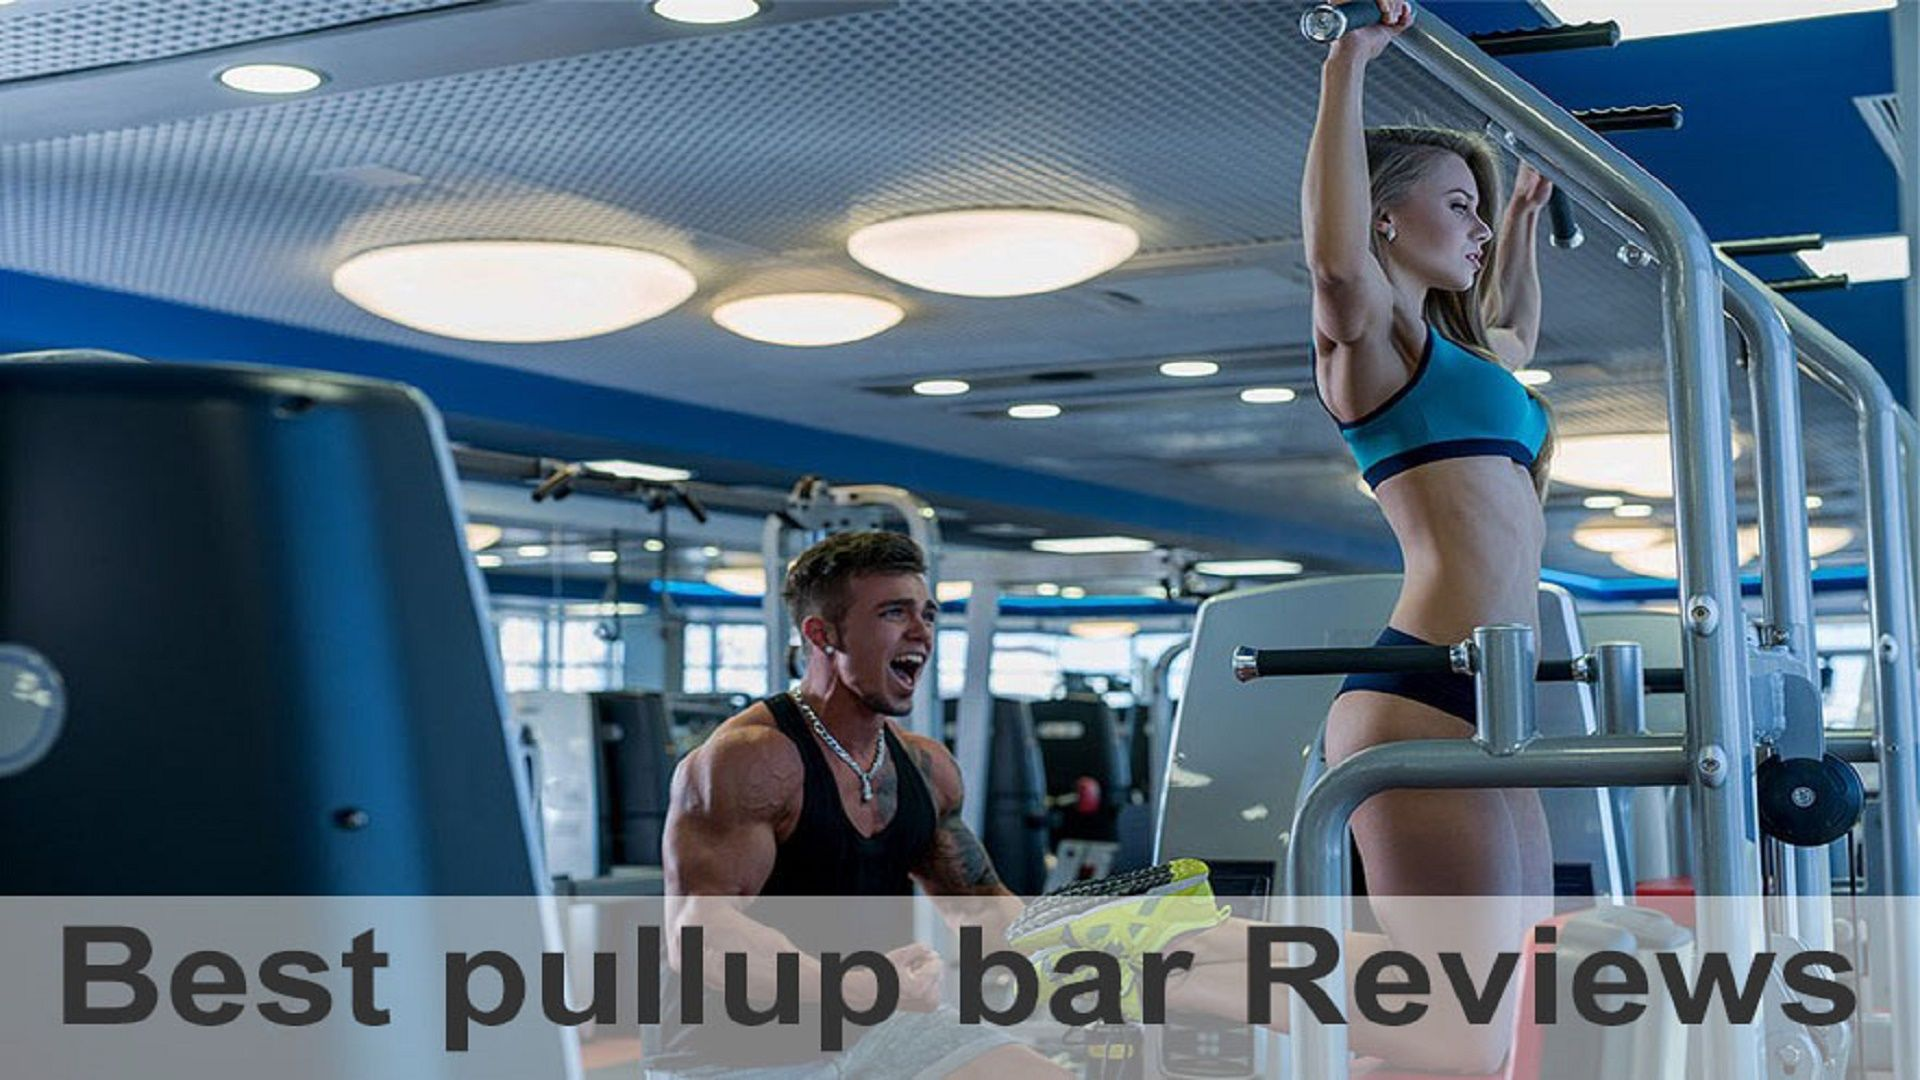 0d3e62a7bf61cbcd840ded53e1aa4fd2 Top Result 50 Unique Portable Pull Up Bar